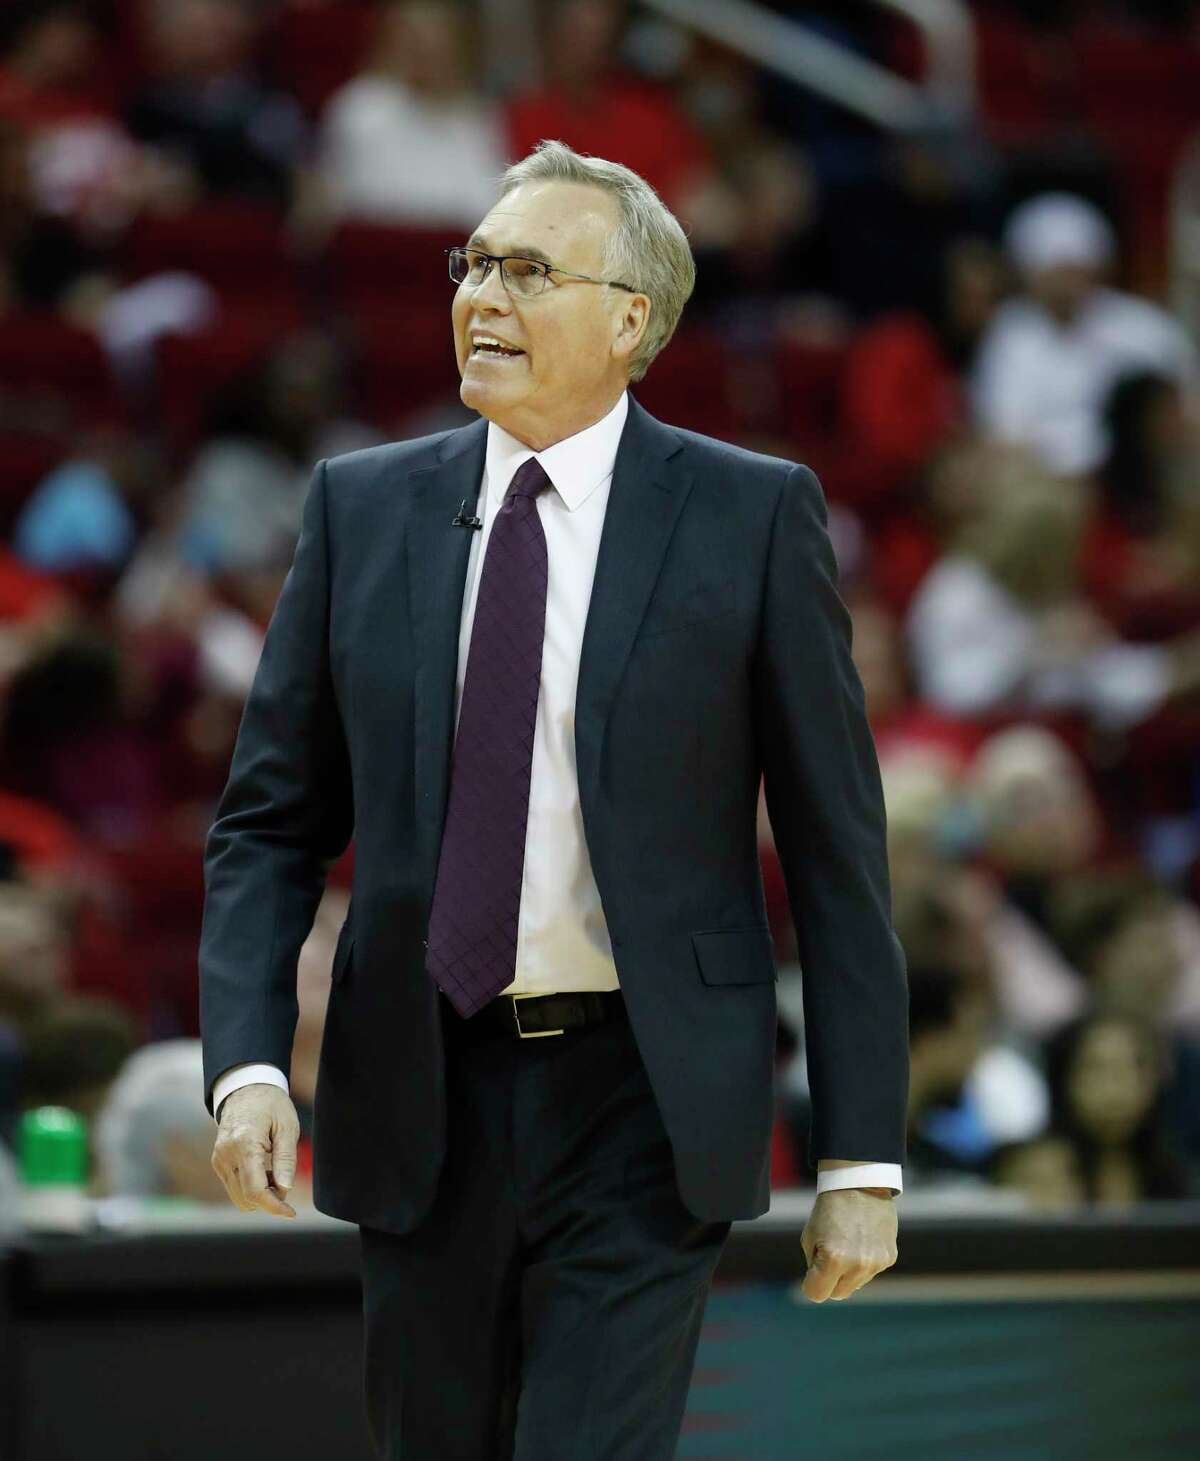 Houston Rockets head coach Mike D'Antoni during the first half of an NBA basketball game at Toyota Center in Houston, Sunday, Feb. 2, 2020.